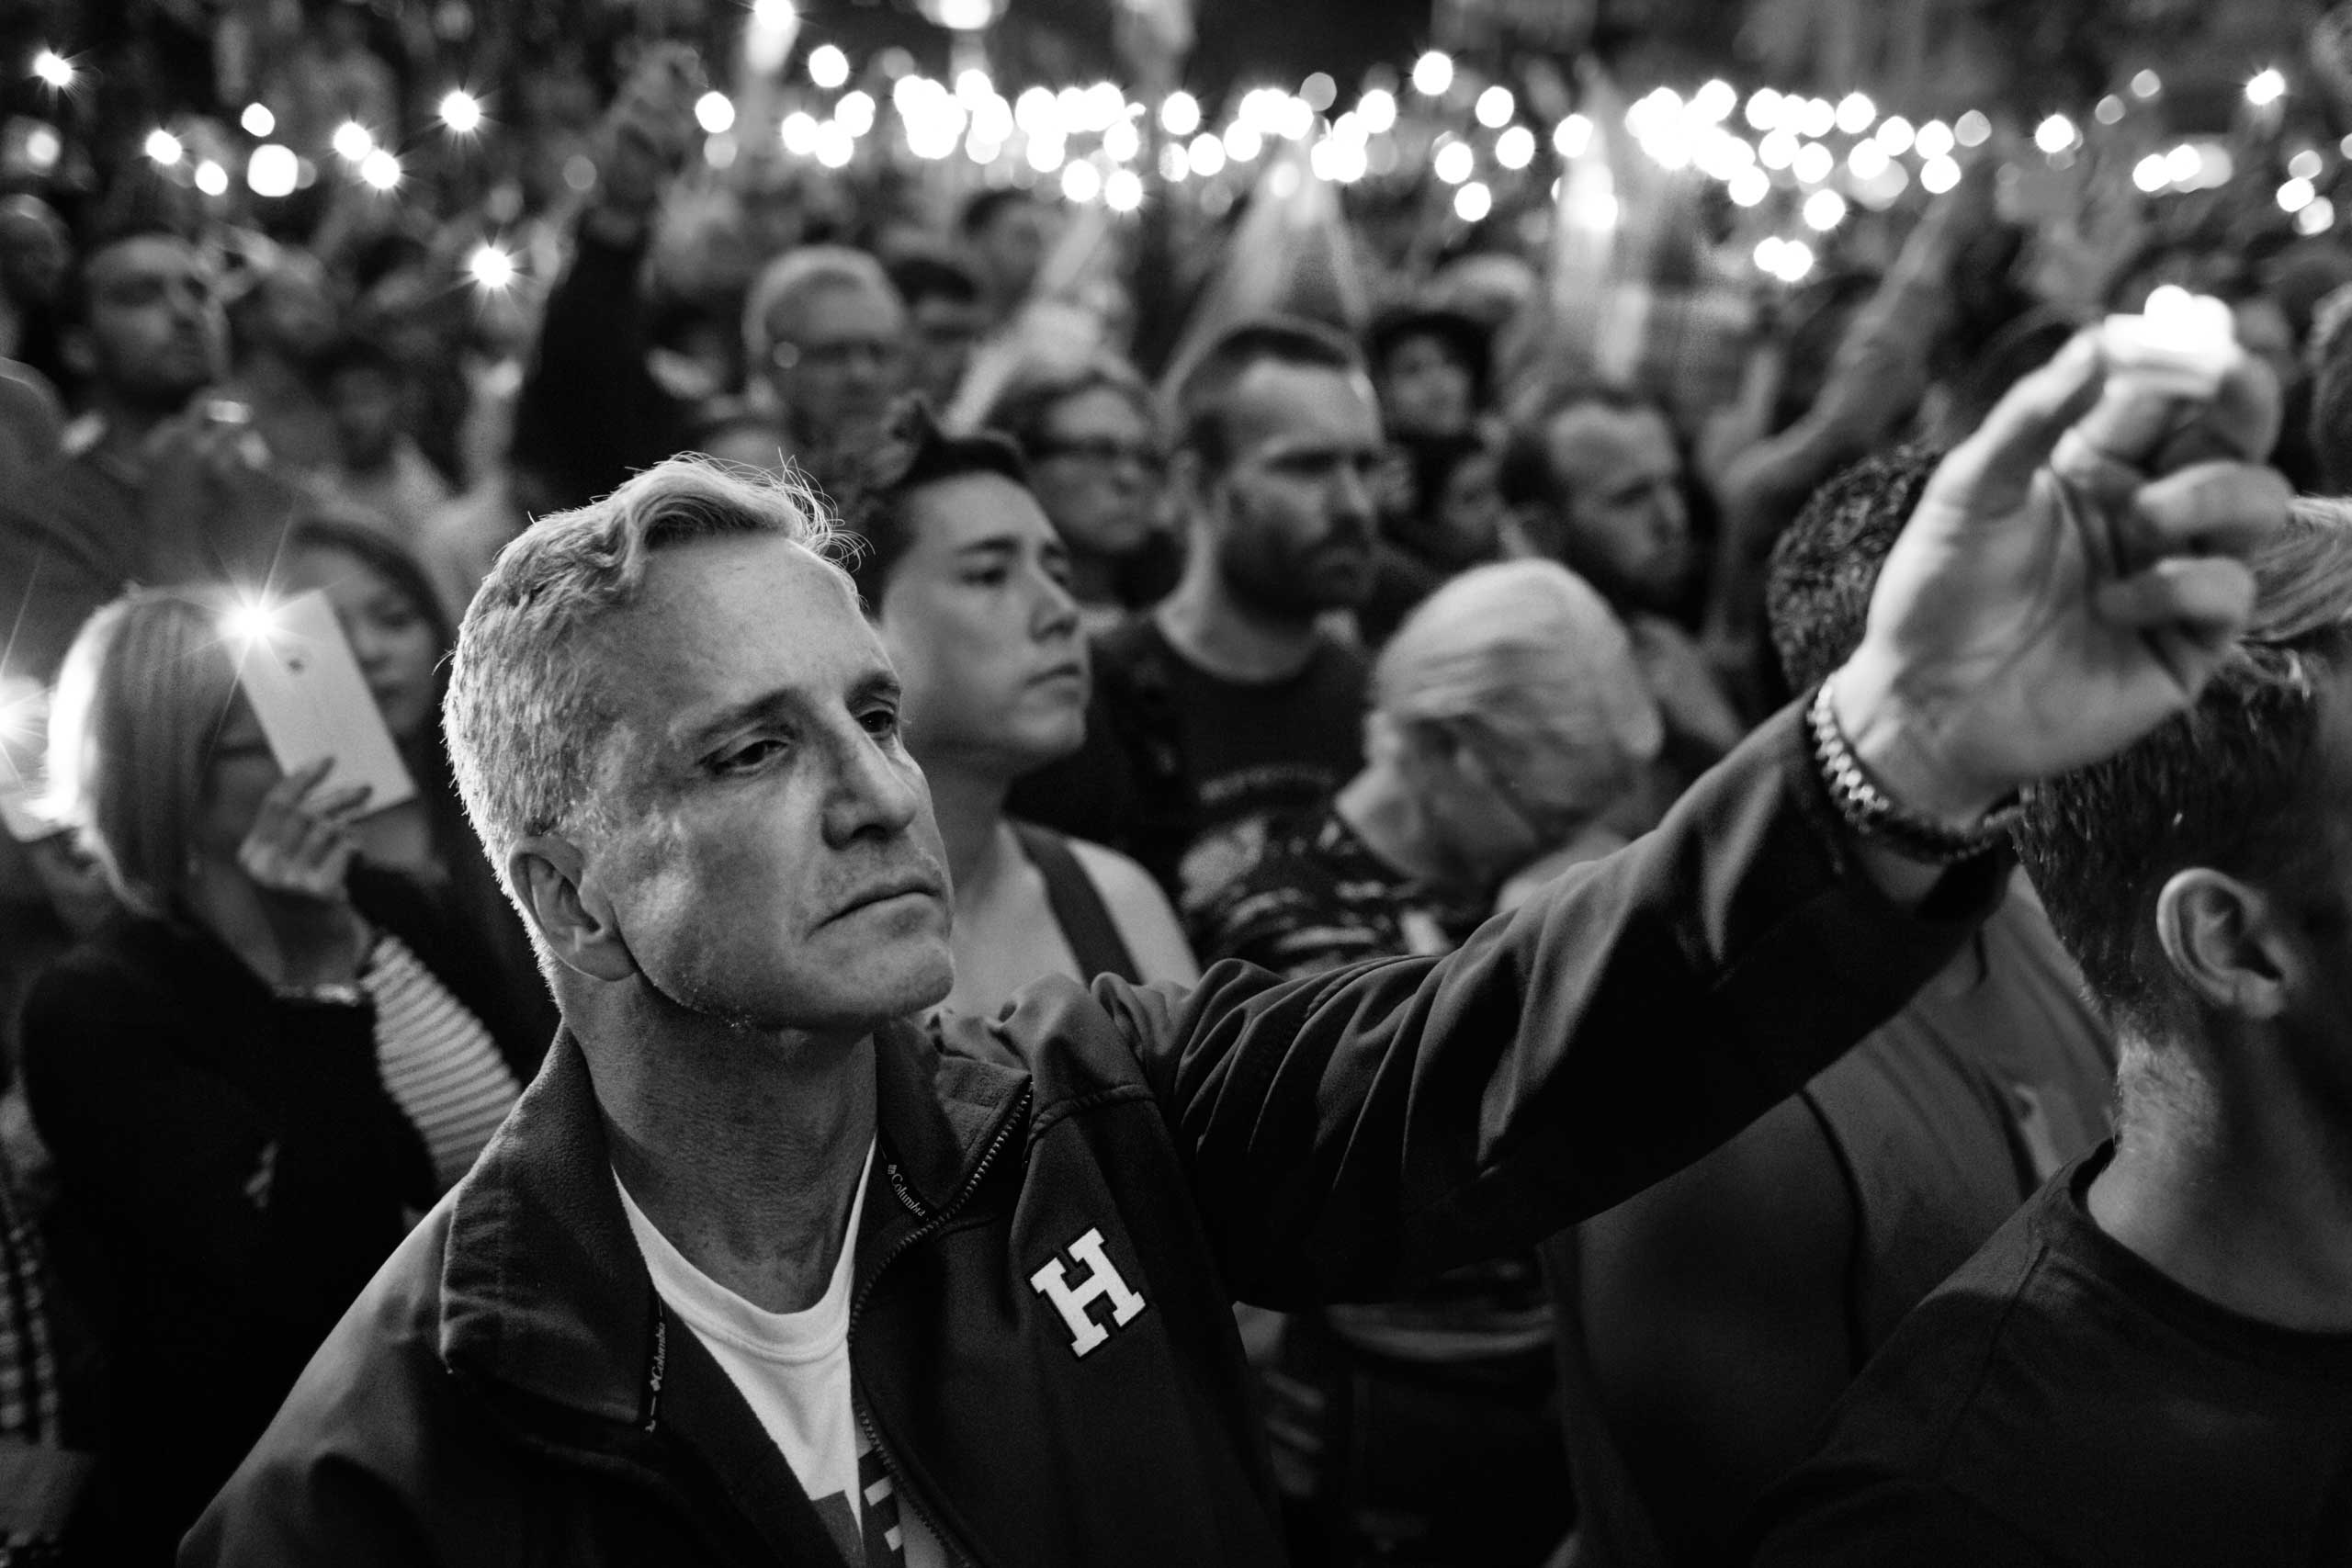 June 13, 2016 - New York, New York: Jeff Davis is holding up a candle at a vigil for the victims of the Orlando shooting at Stonewall Inn.